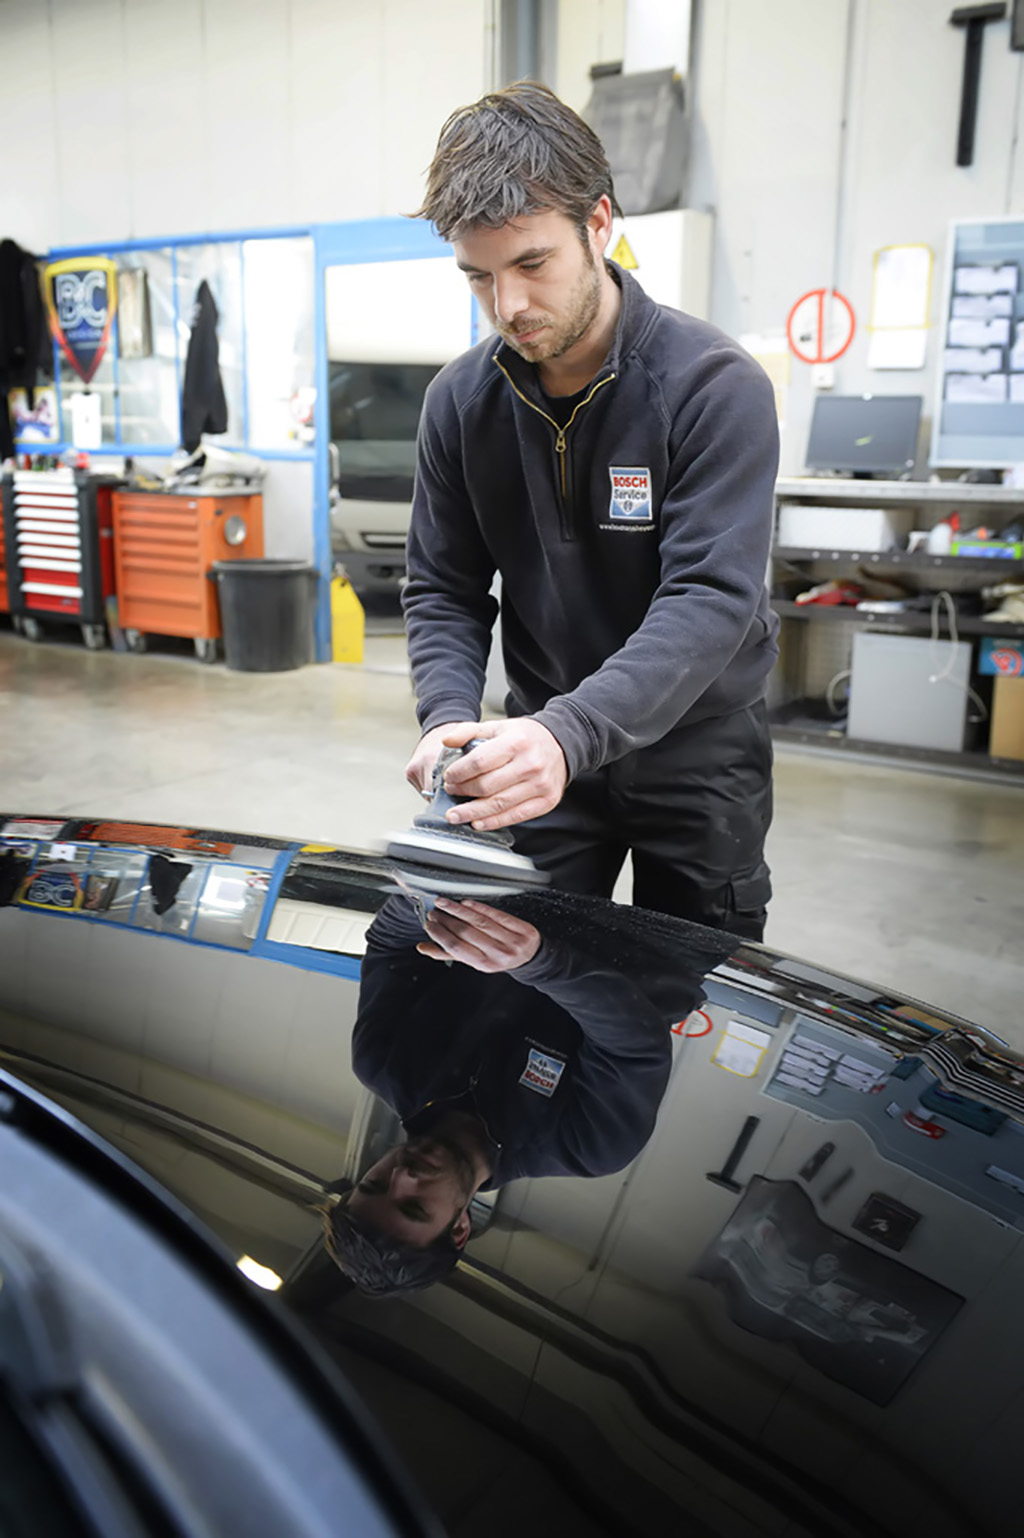 Carrosserie Houman Smart Repair polieren